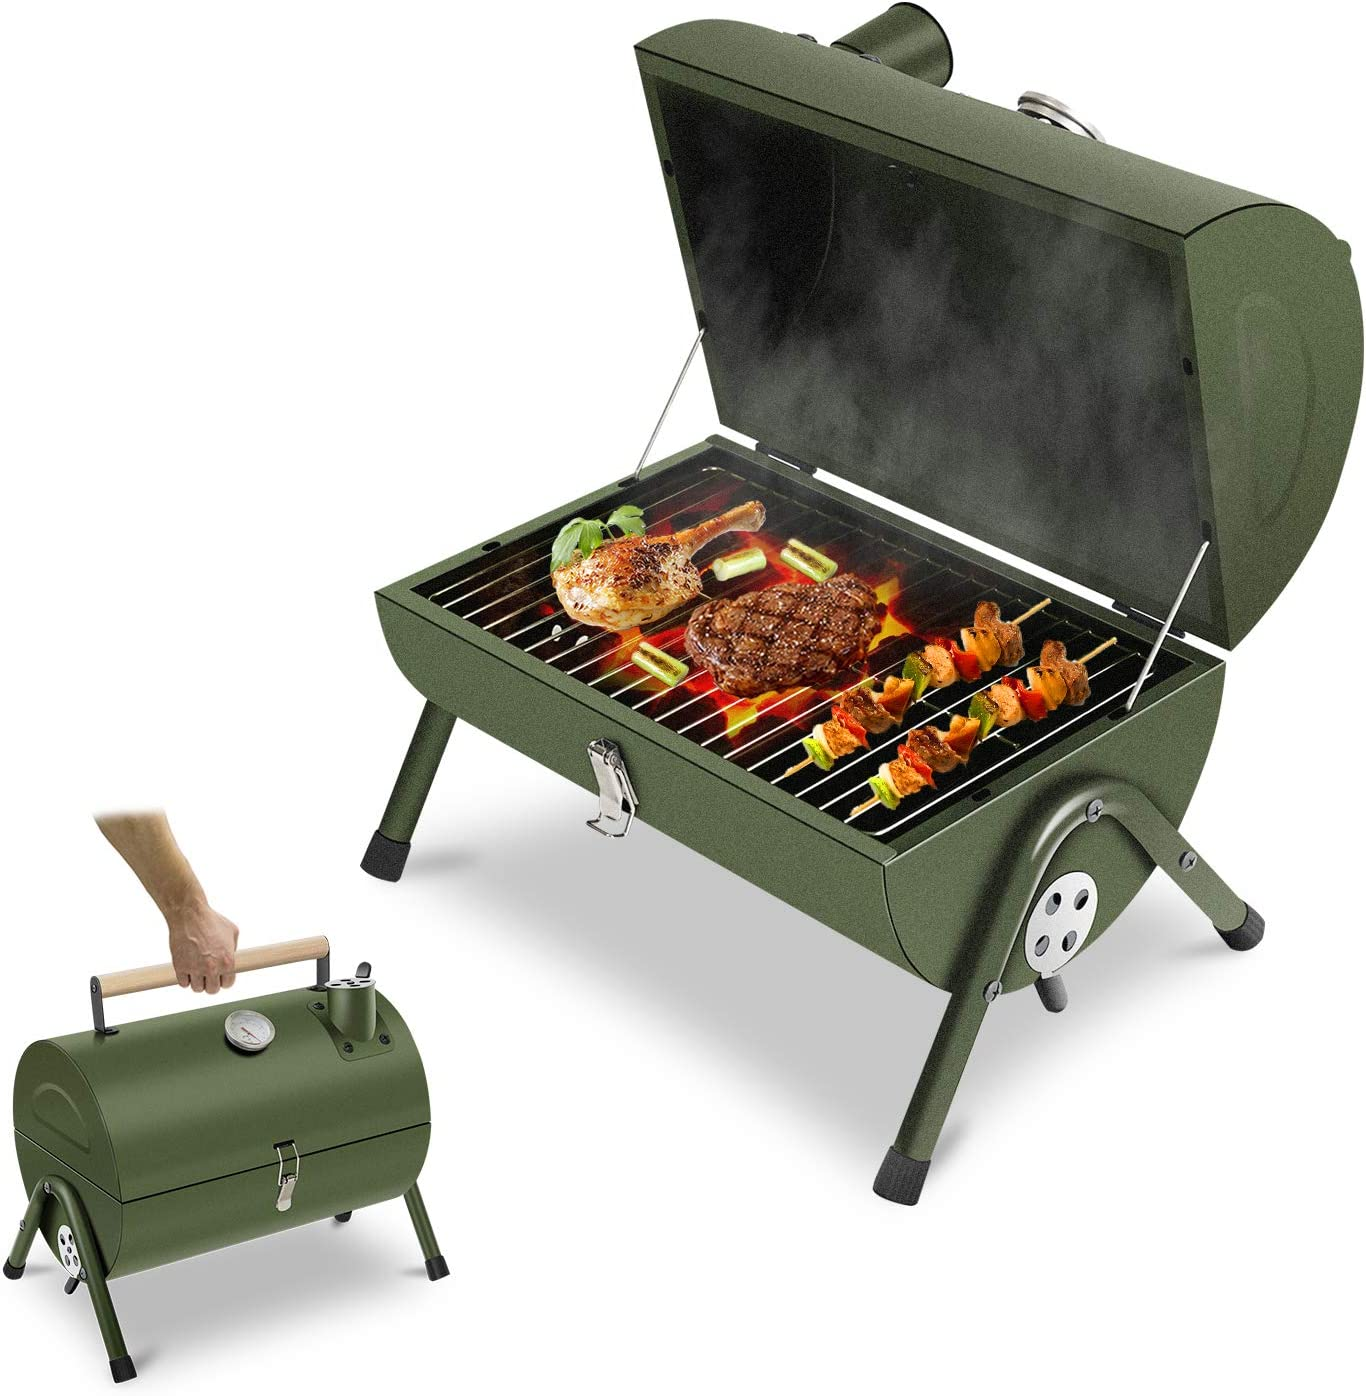 ACWARM HOME Portable Charcoal Grill, Small BBQ Smoker Grill, Tabletop Barbecue Charcoal Grill for Outdoor Camping Garden Backyard Cooking Picnic Traveling (Green)